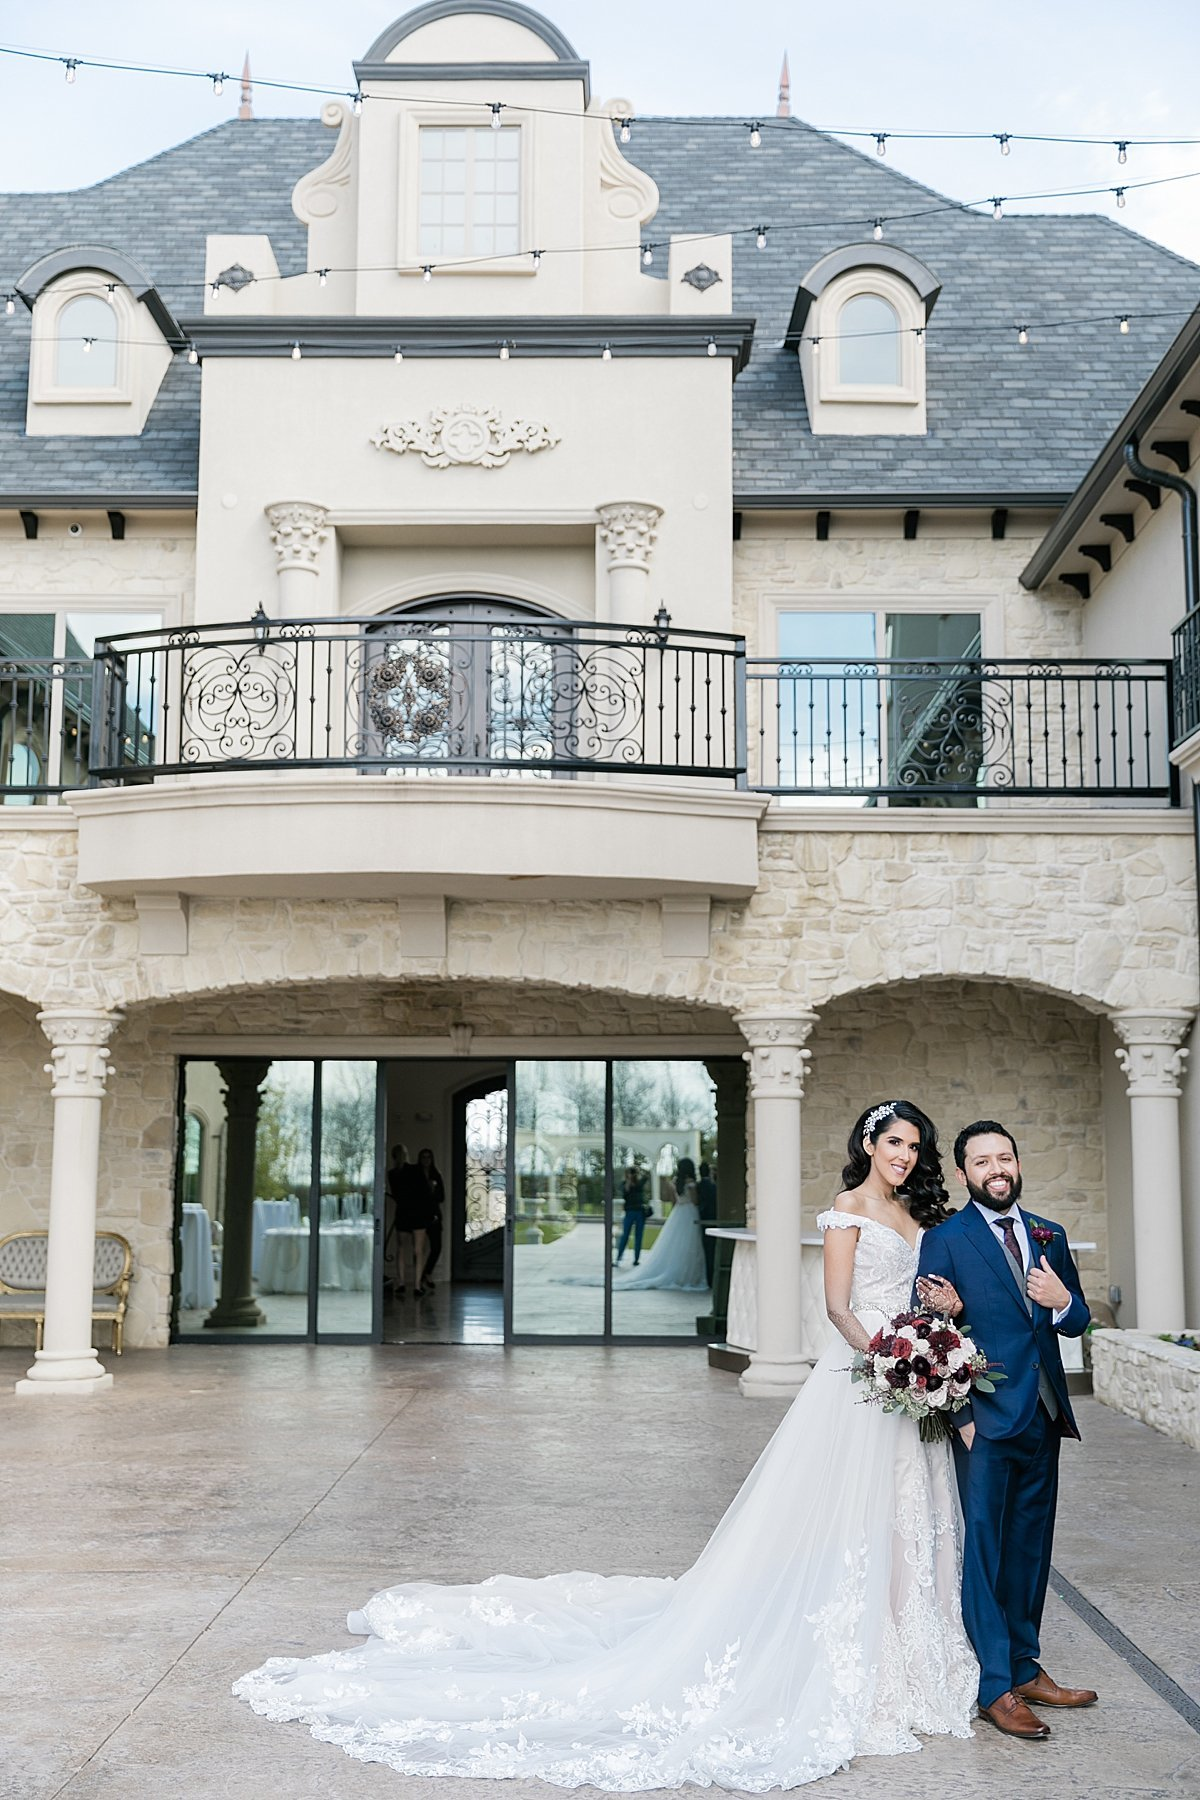 The-Knottinghill-Place-wedding-by-Dallas-photographer-Julia-Sharapova_0047